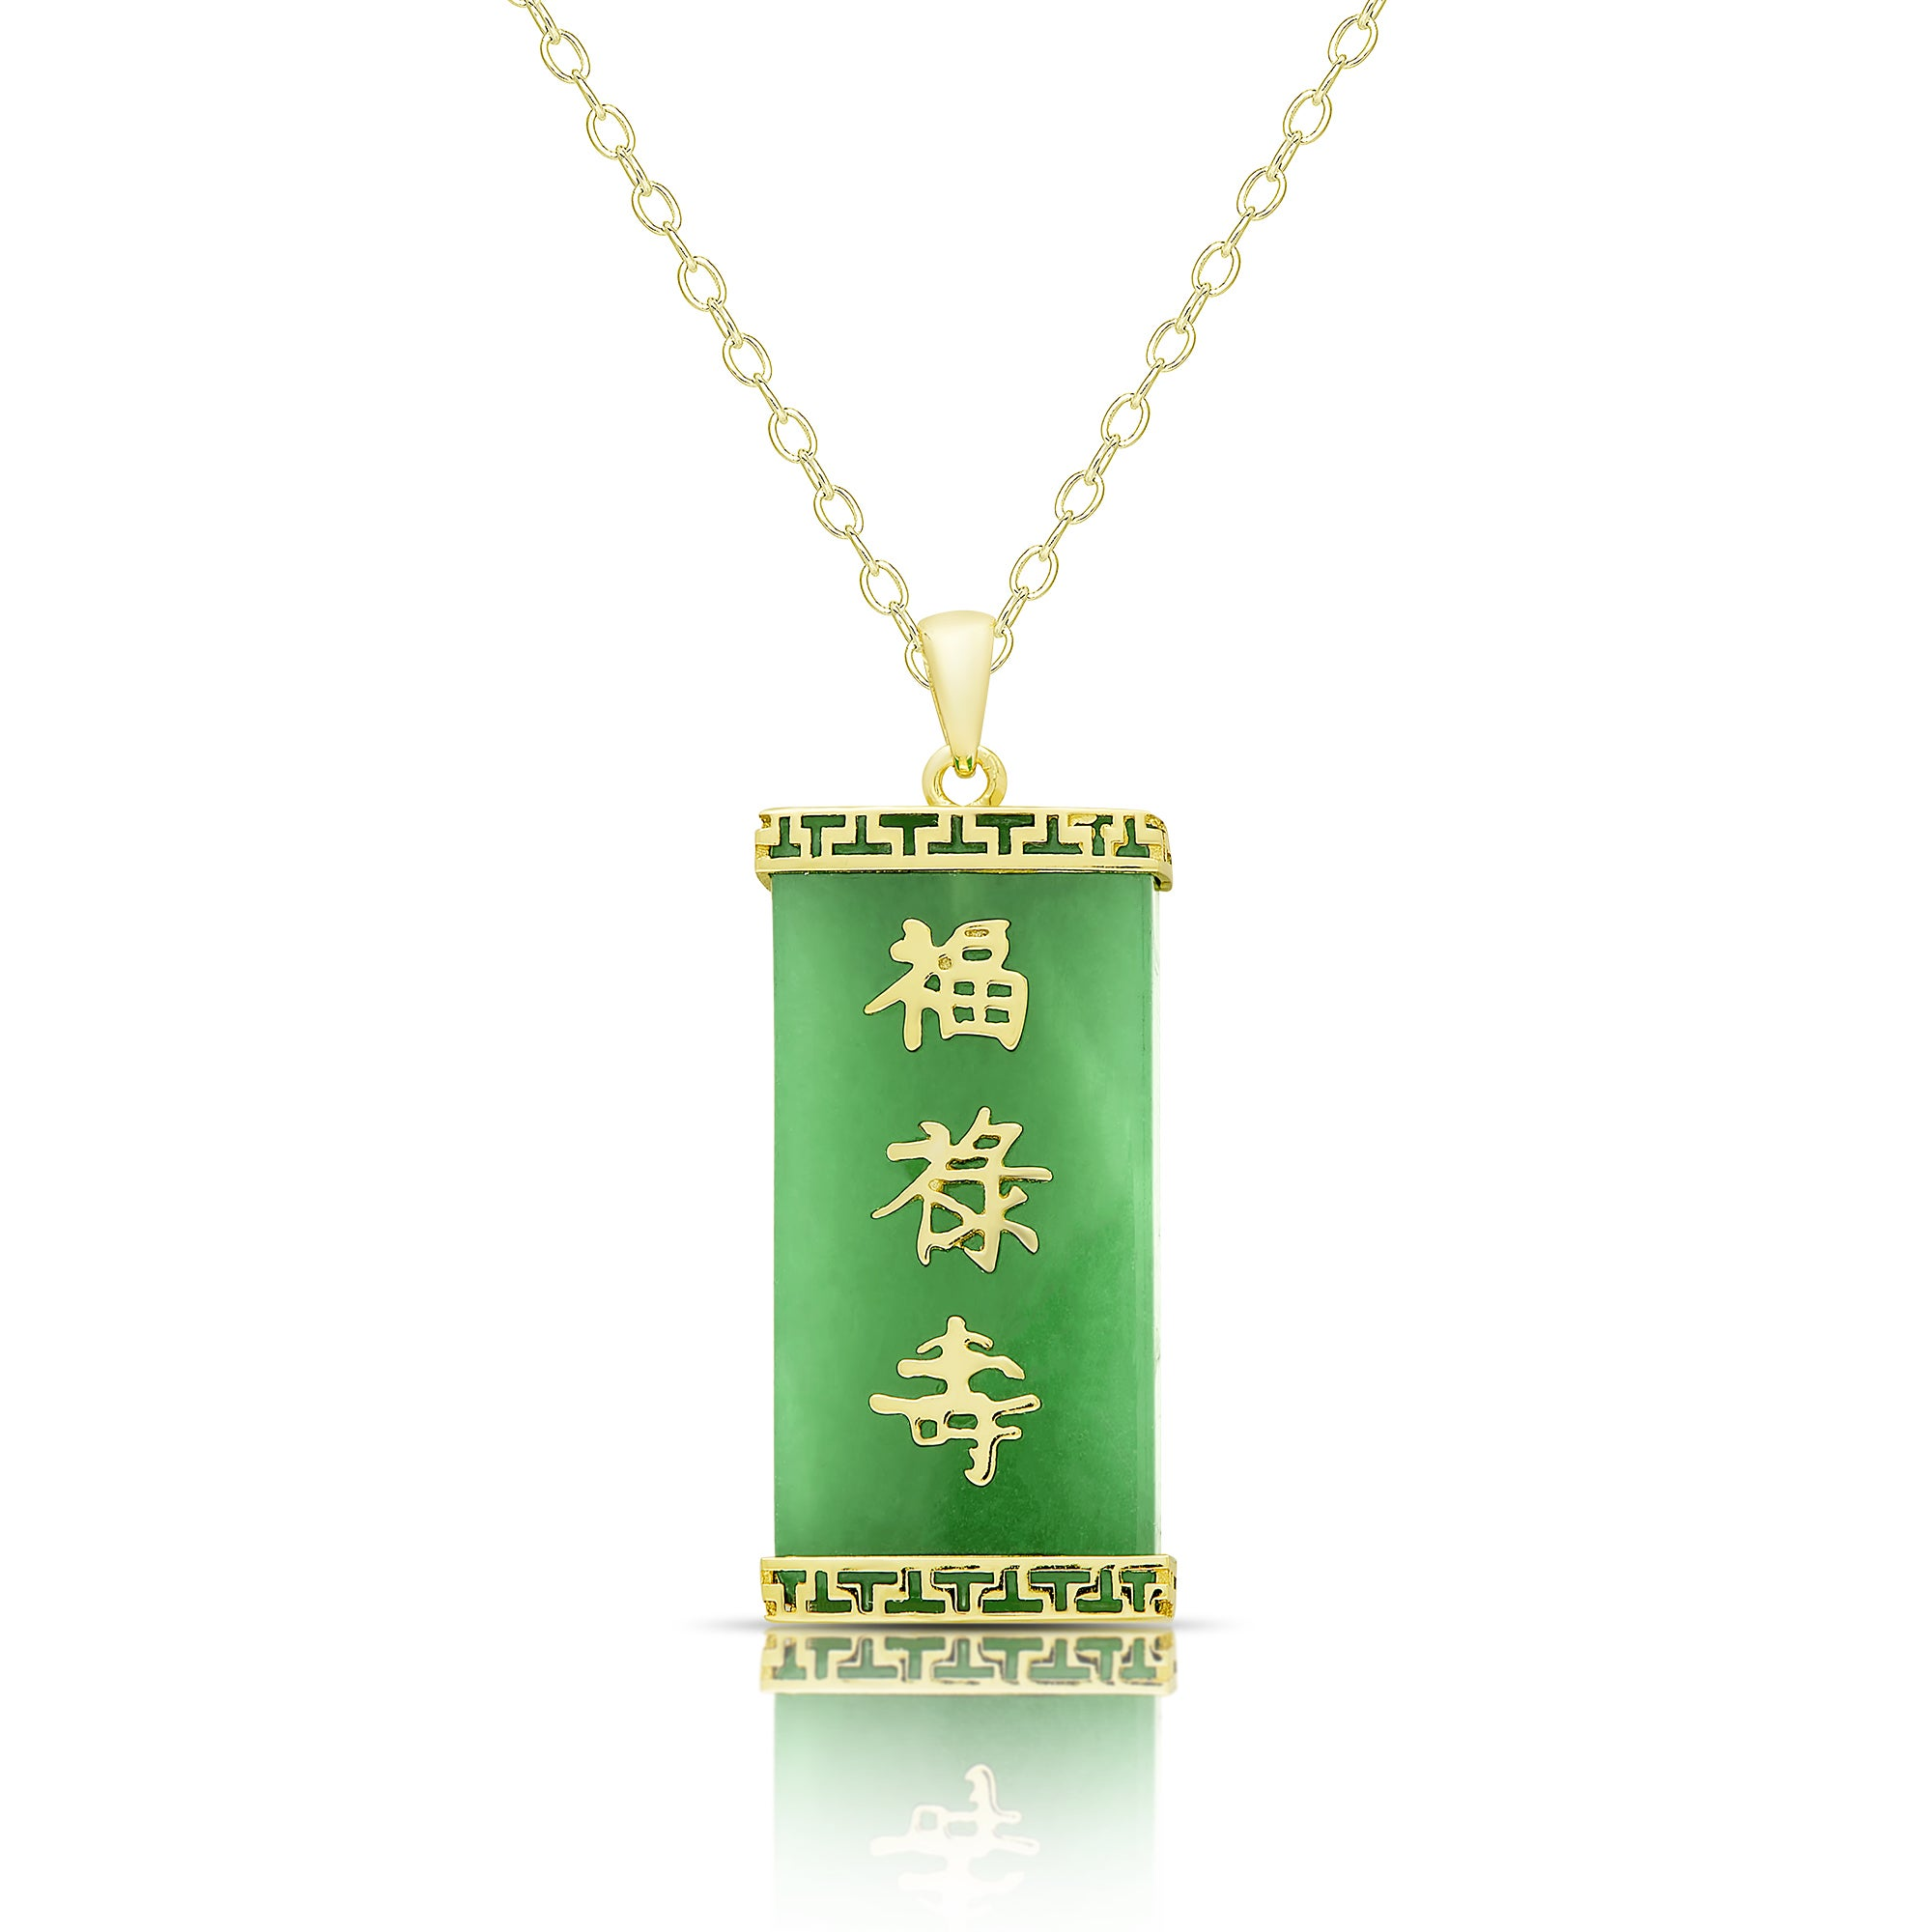 necklace ed fit peretti green pendants wid jewelry pendant necklaces co tiffany gold fmt bean of id and hei jade constrain elsa